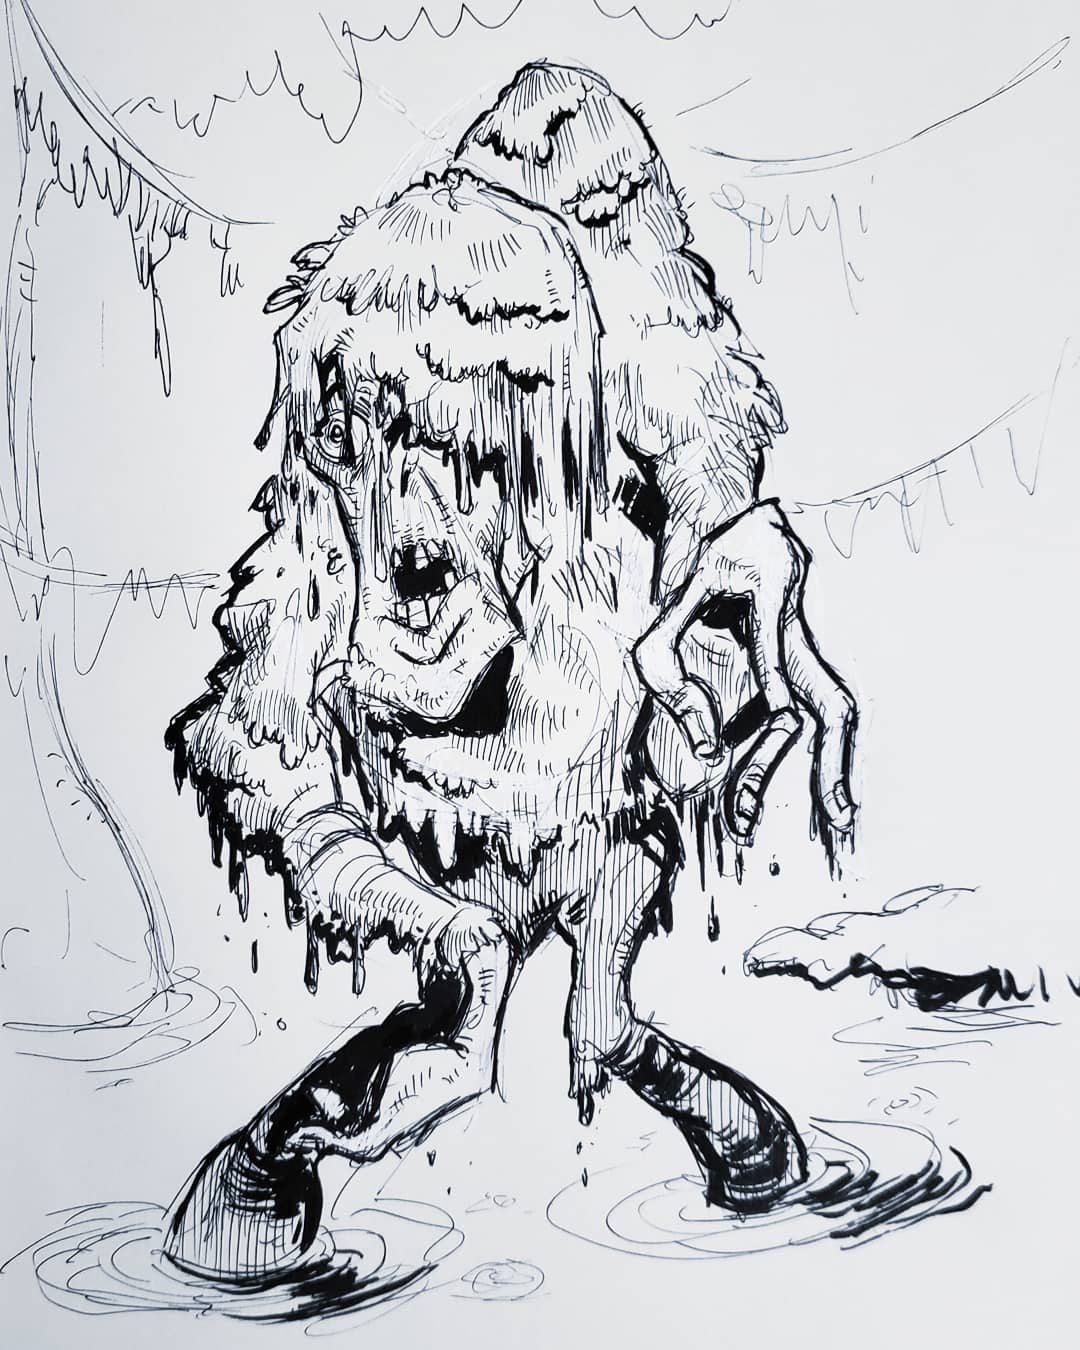 Swamp Zombie (Jack Davis Style) Ink on Paper